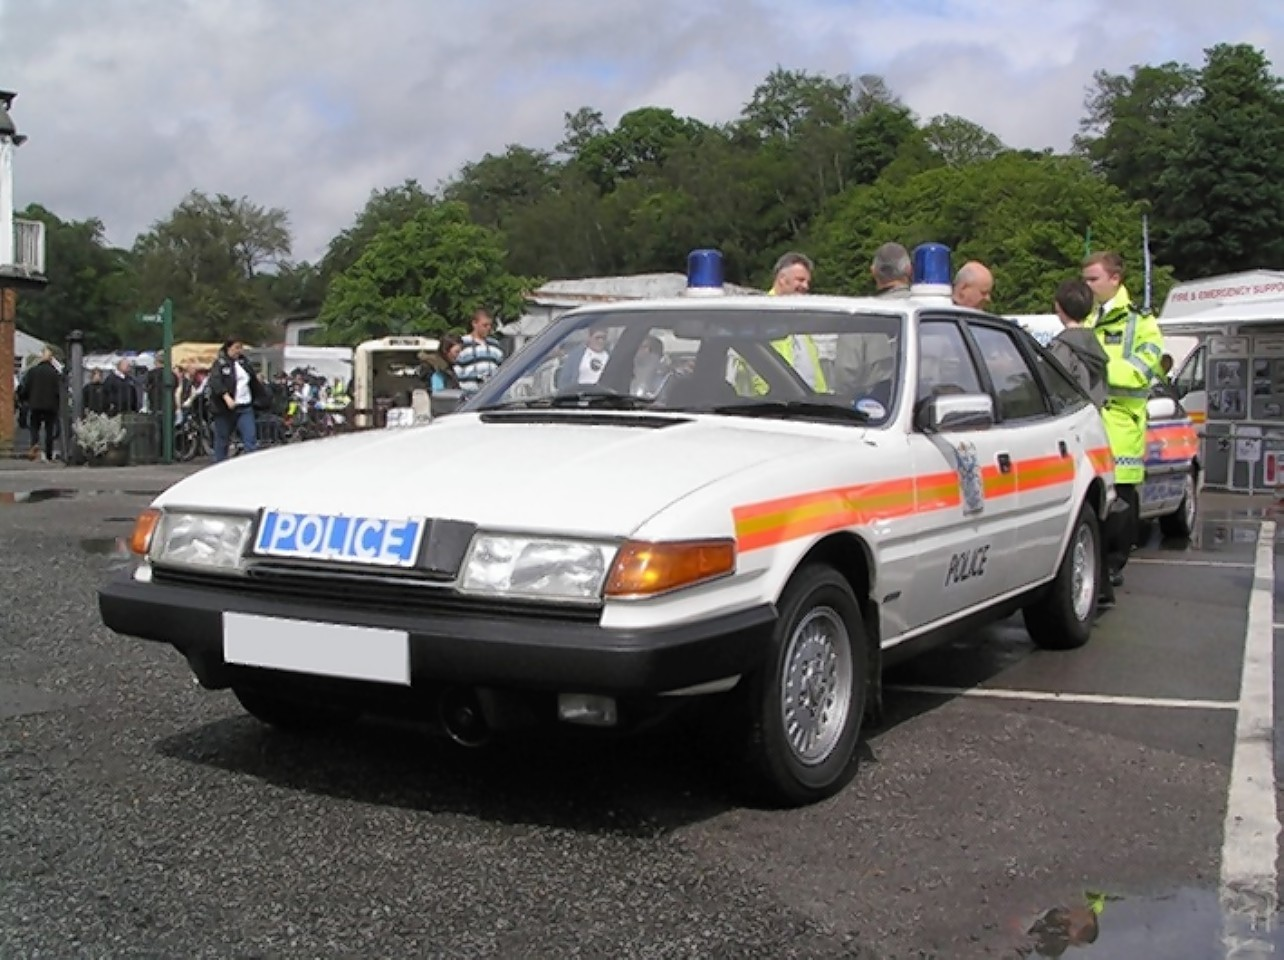 The police car up for auction